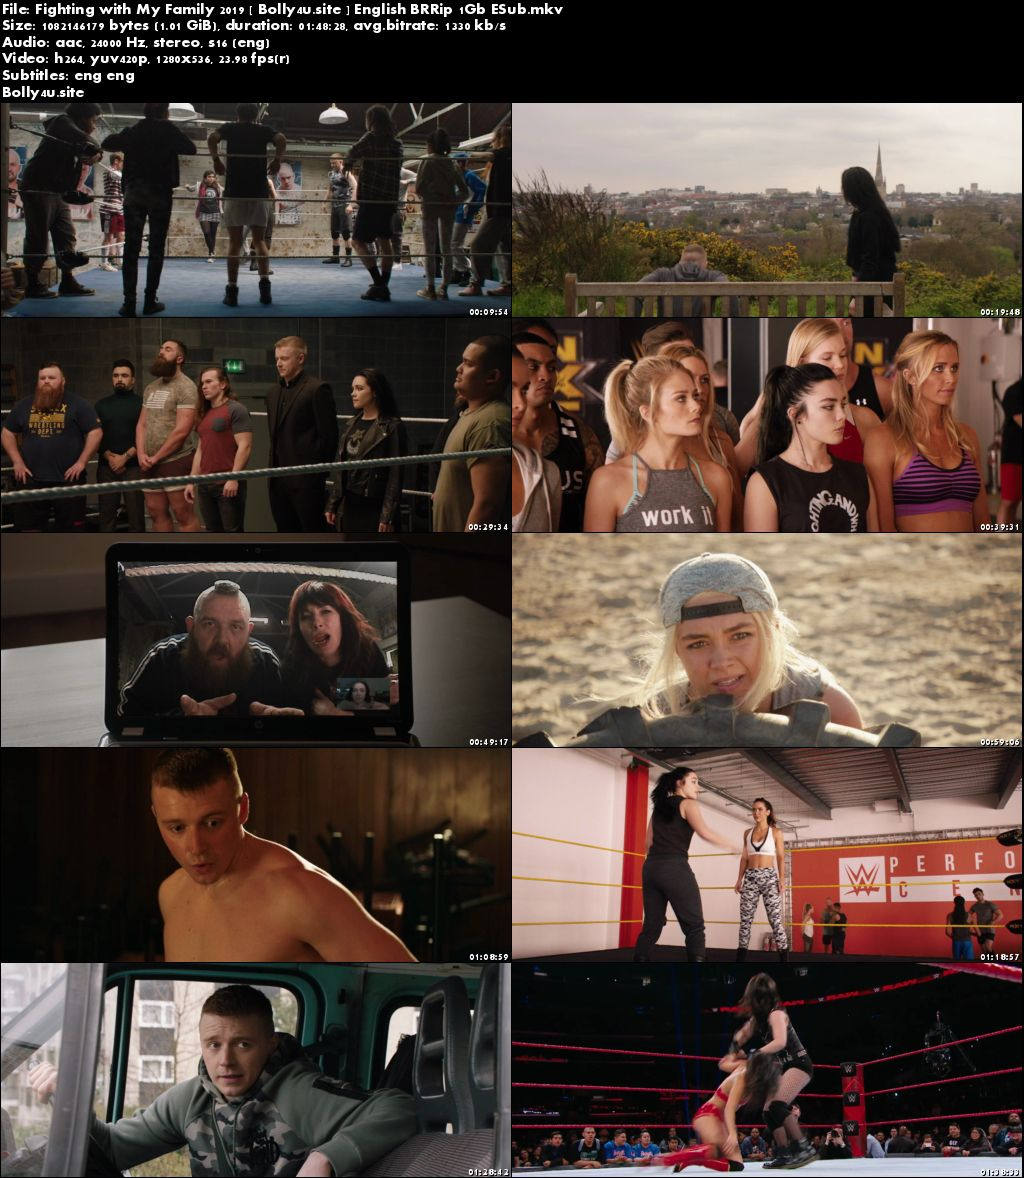 Fighting with My Family 2019 BRRip 1GB English 720p ESub Download